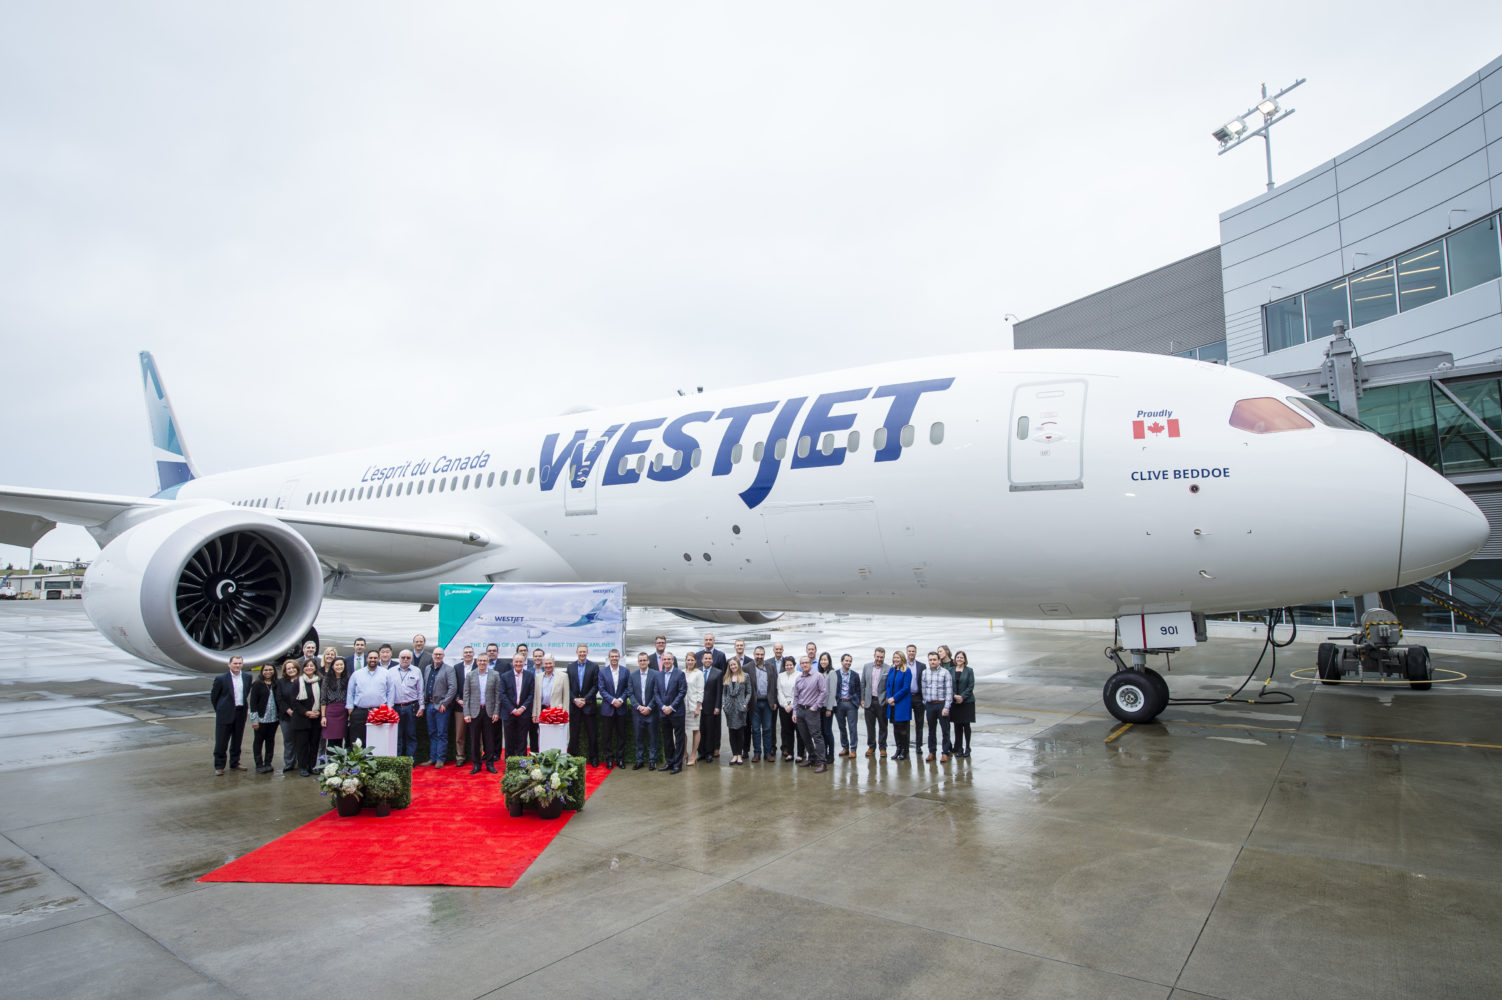 Flights With West Jet Westjet 787 Destinations Routes The Dreamliner Will Fly In 2019